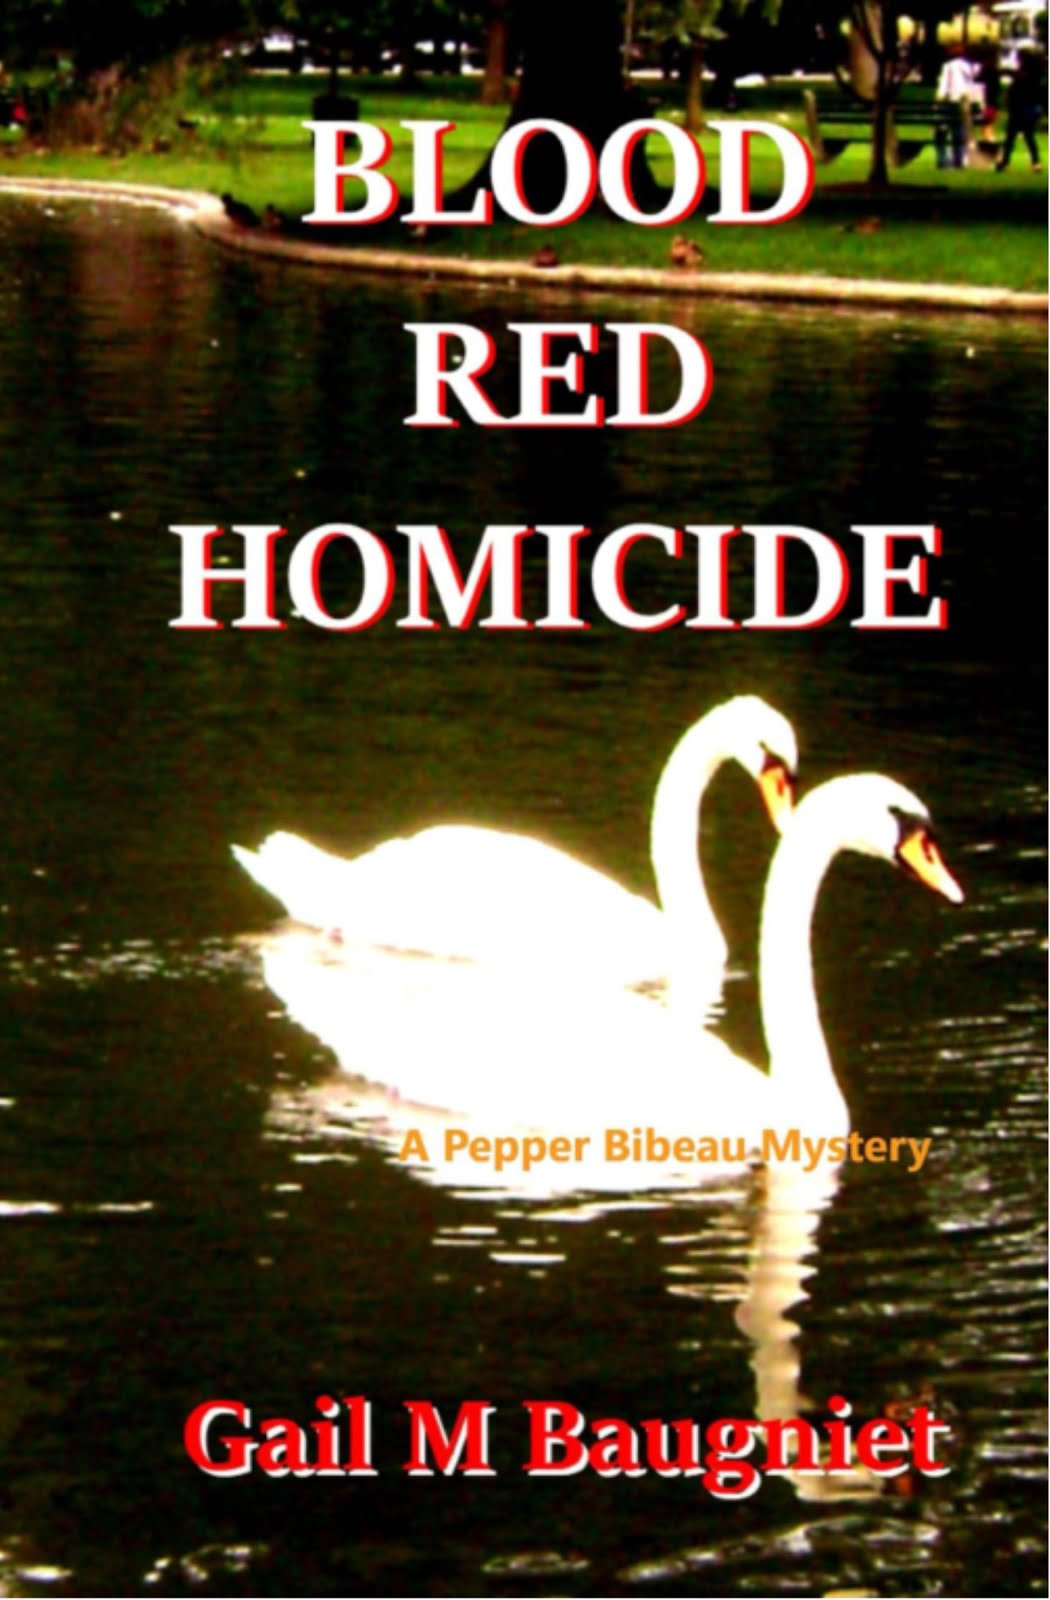 RED HOT MYSTERY SET IN A SWINGING TOWN